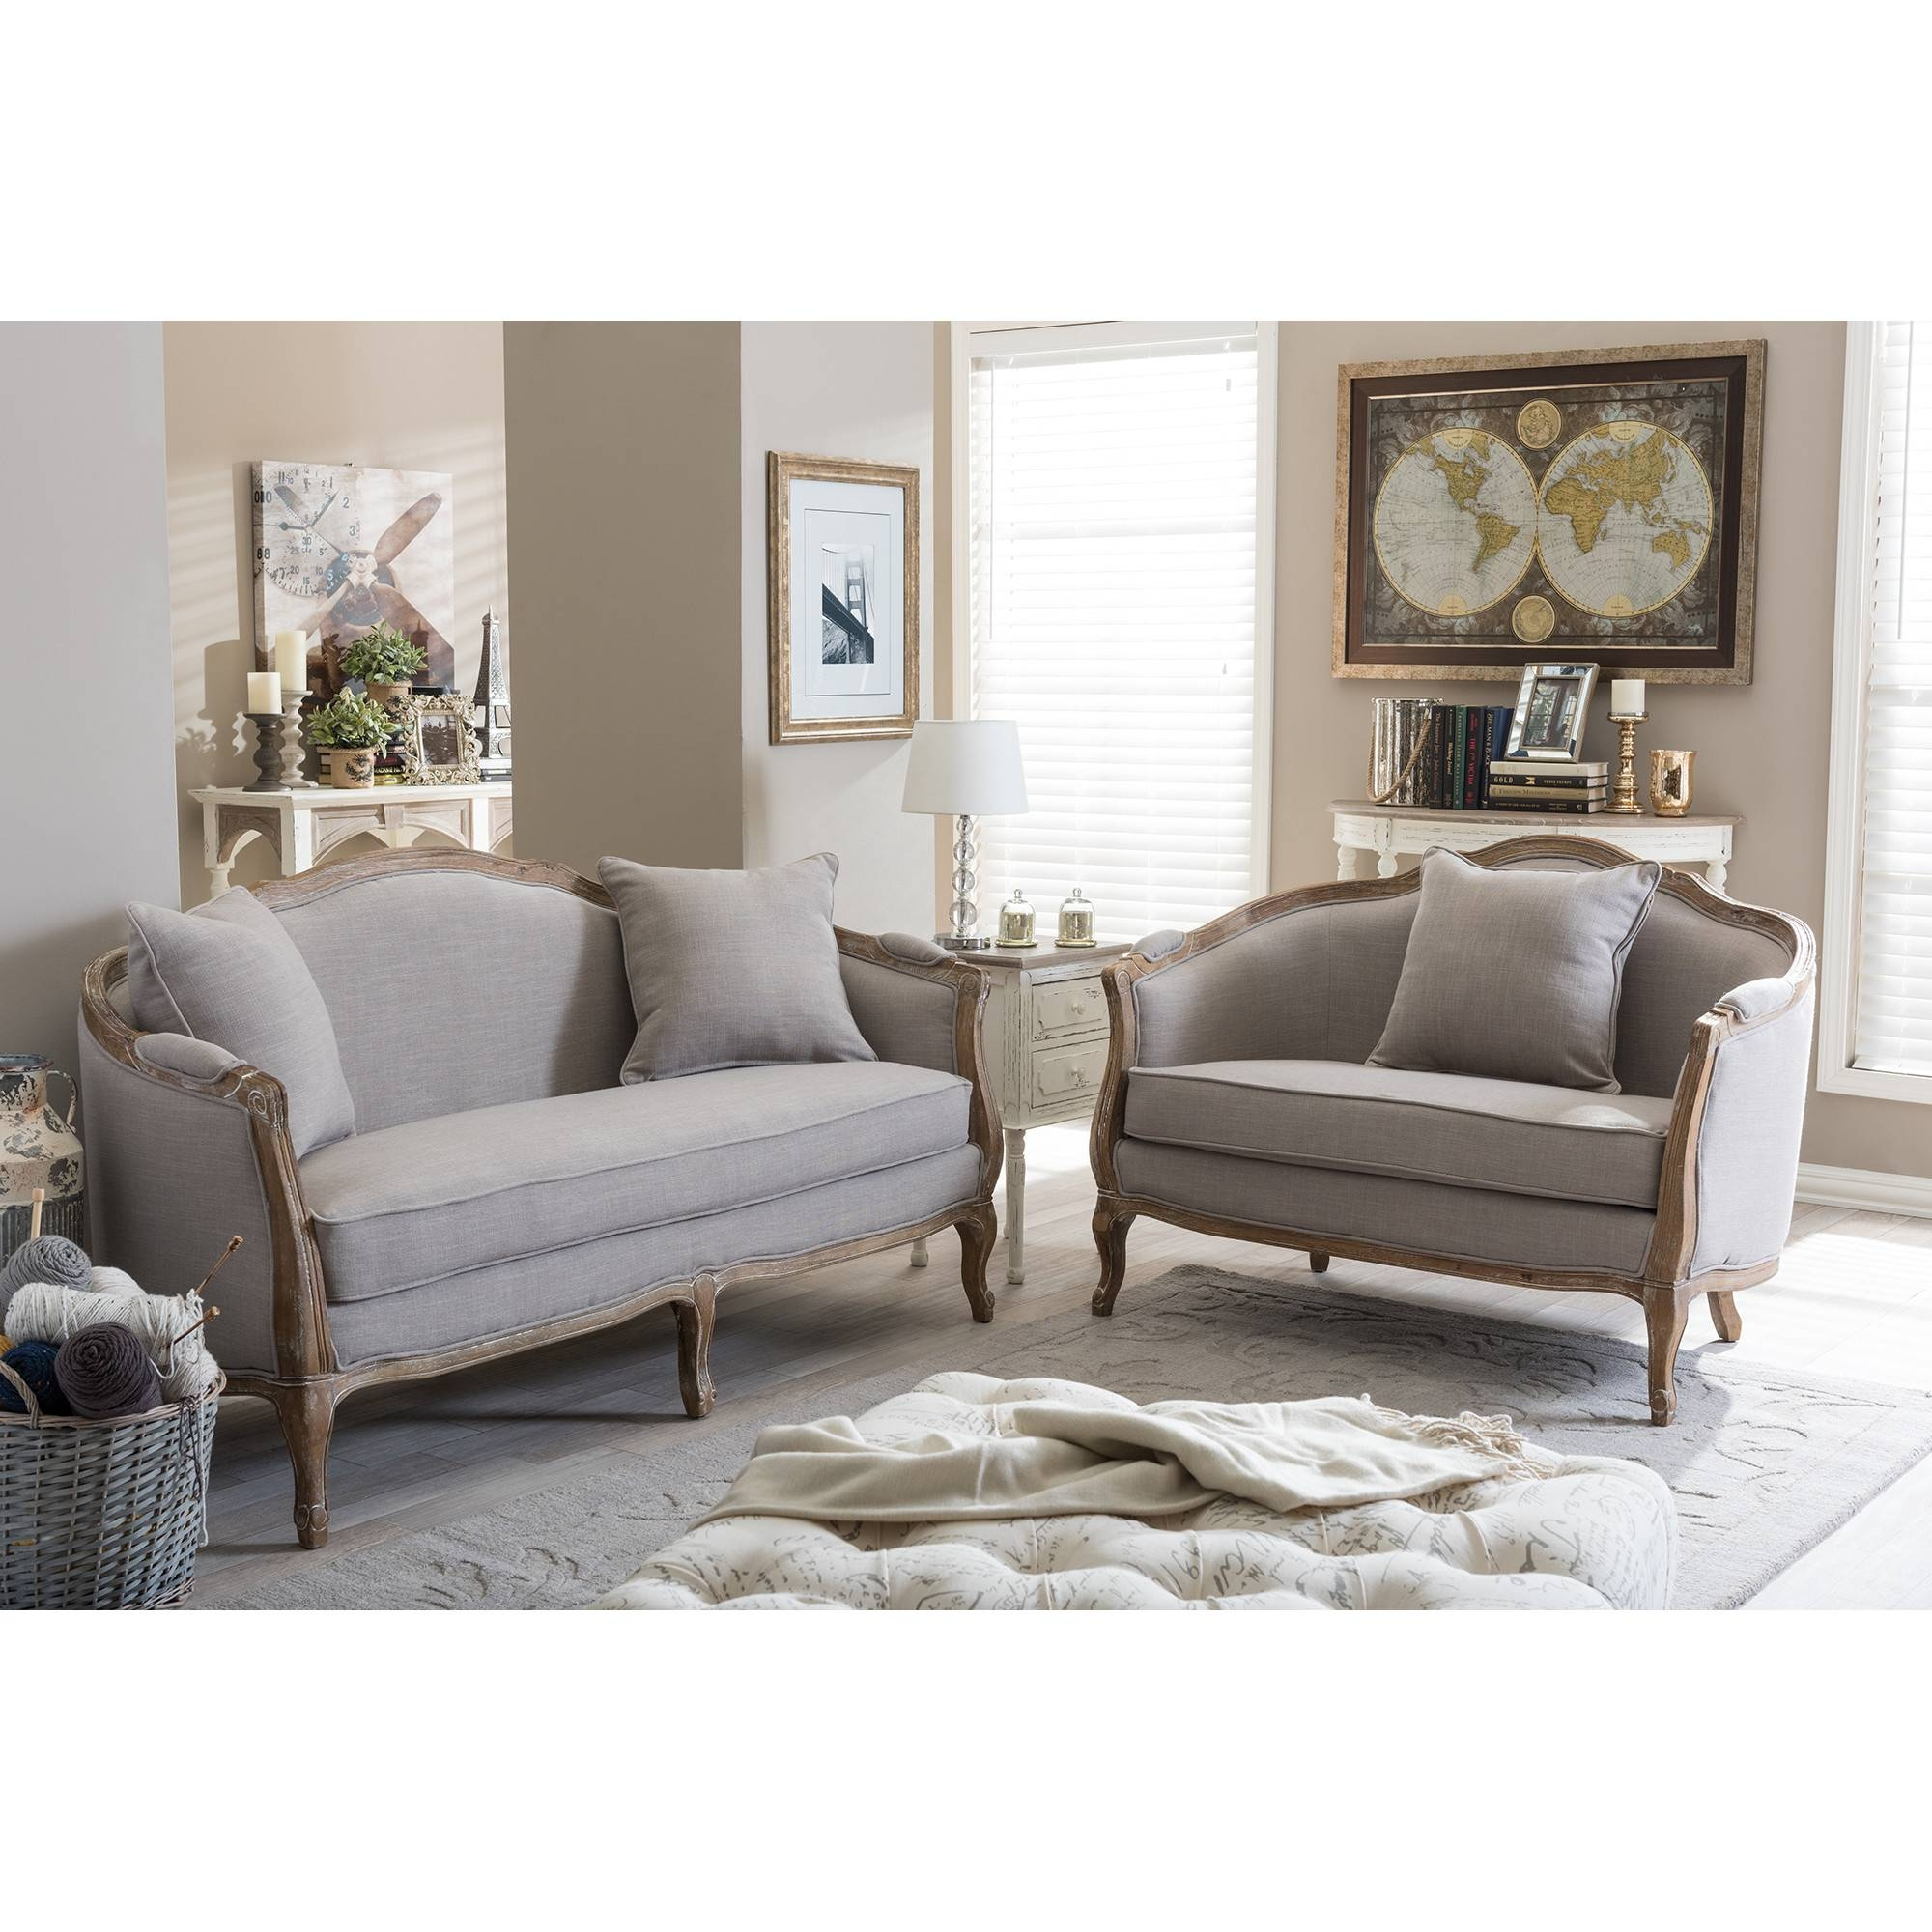 Best Country Style Sofas 36 About Remodel Sofas And Couches Ideas throughout Country Style Sofas (Image 2 of 15)